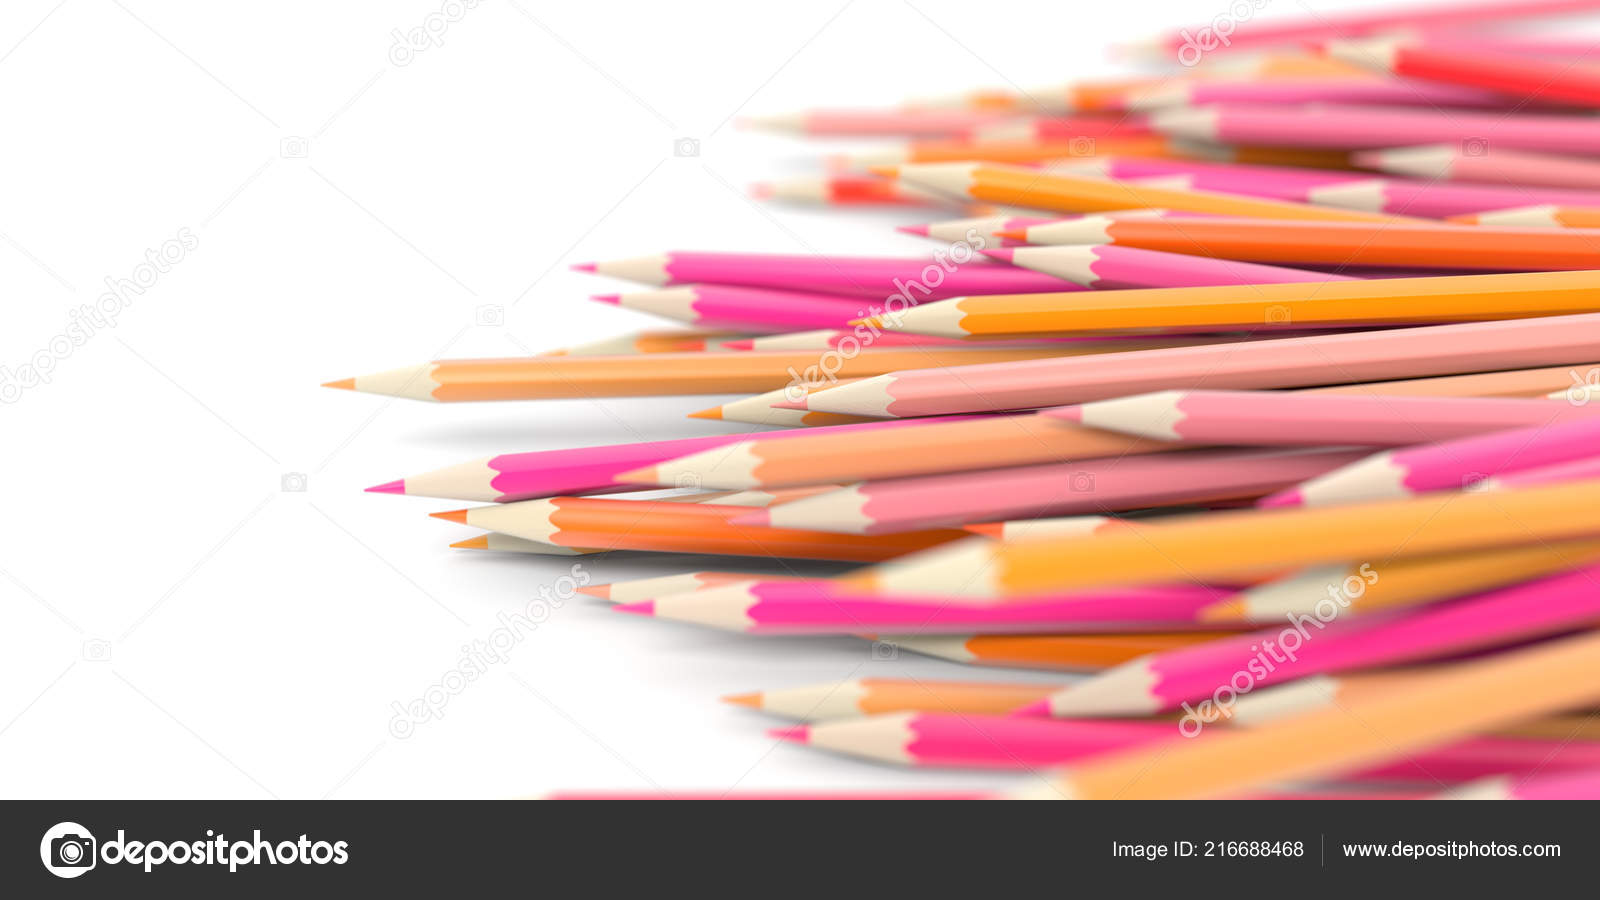 Wallpaper Education Theme Infinite Pencils Background Education Creativity Theme Stock Photo C Tostphoto 216688468